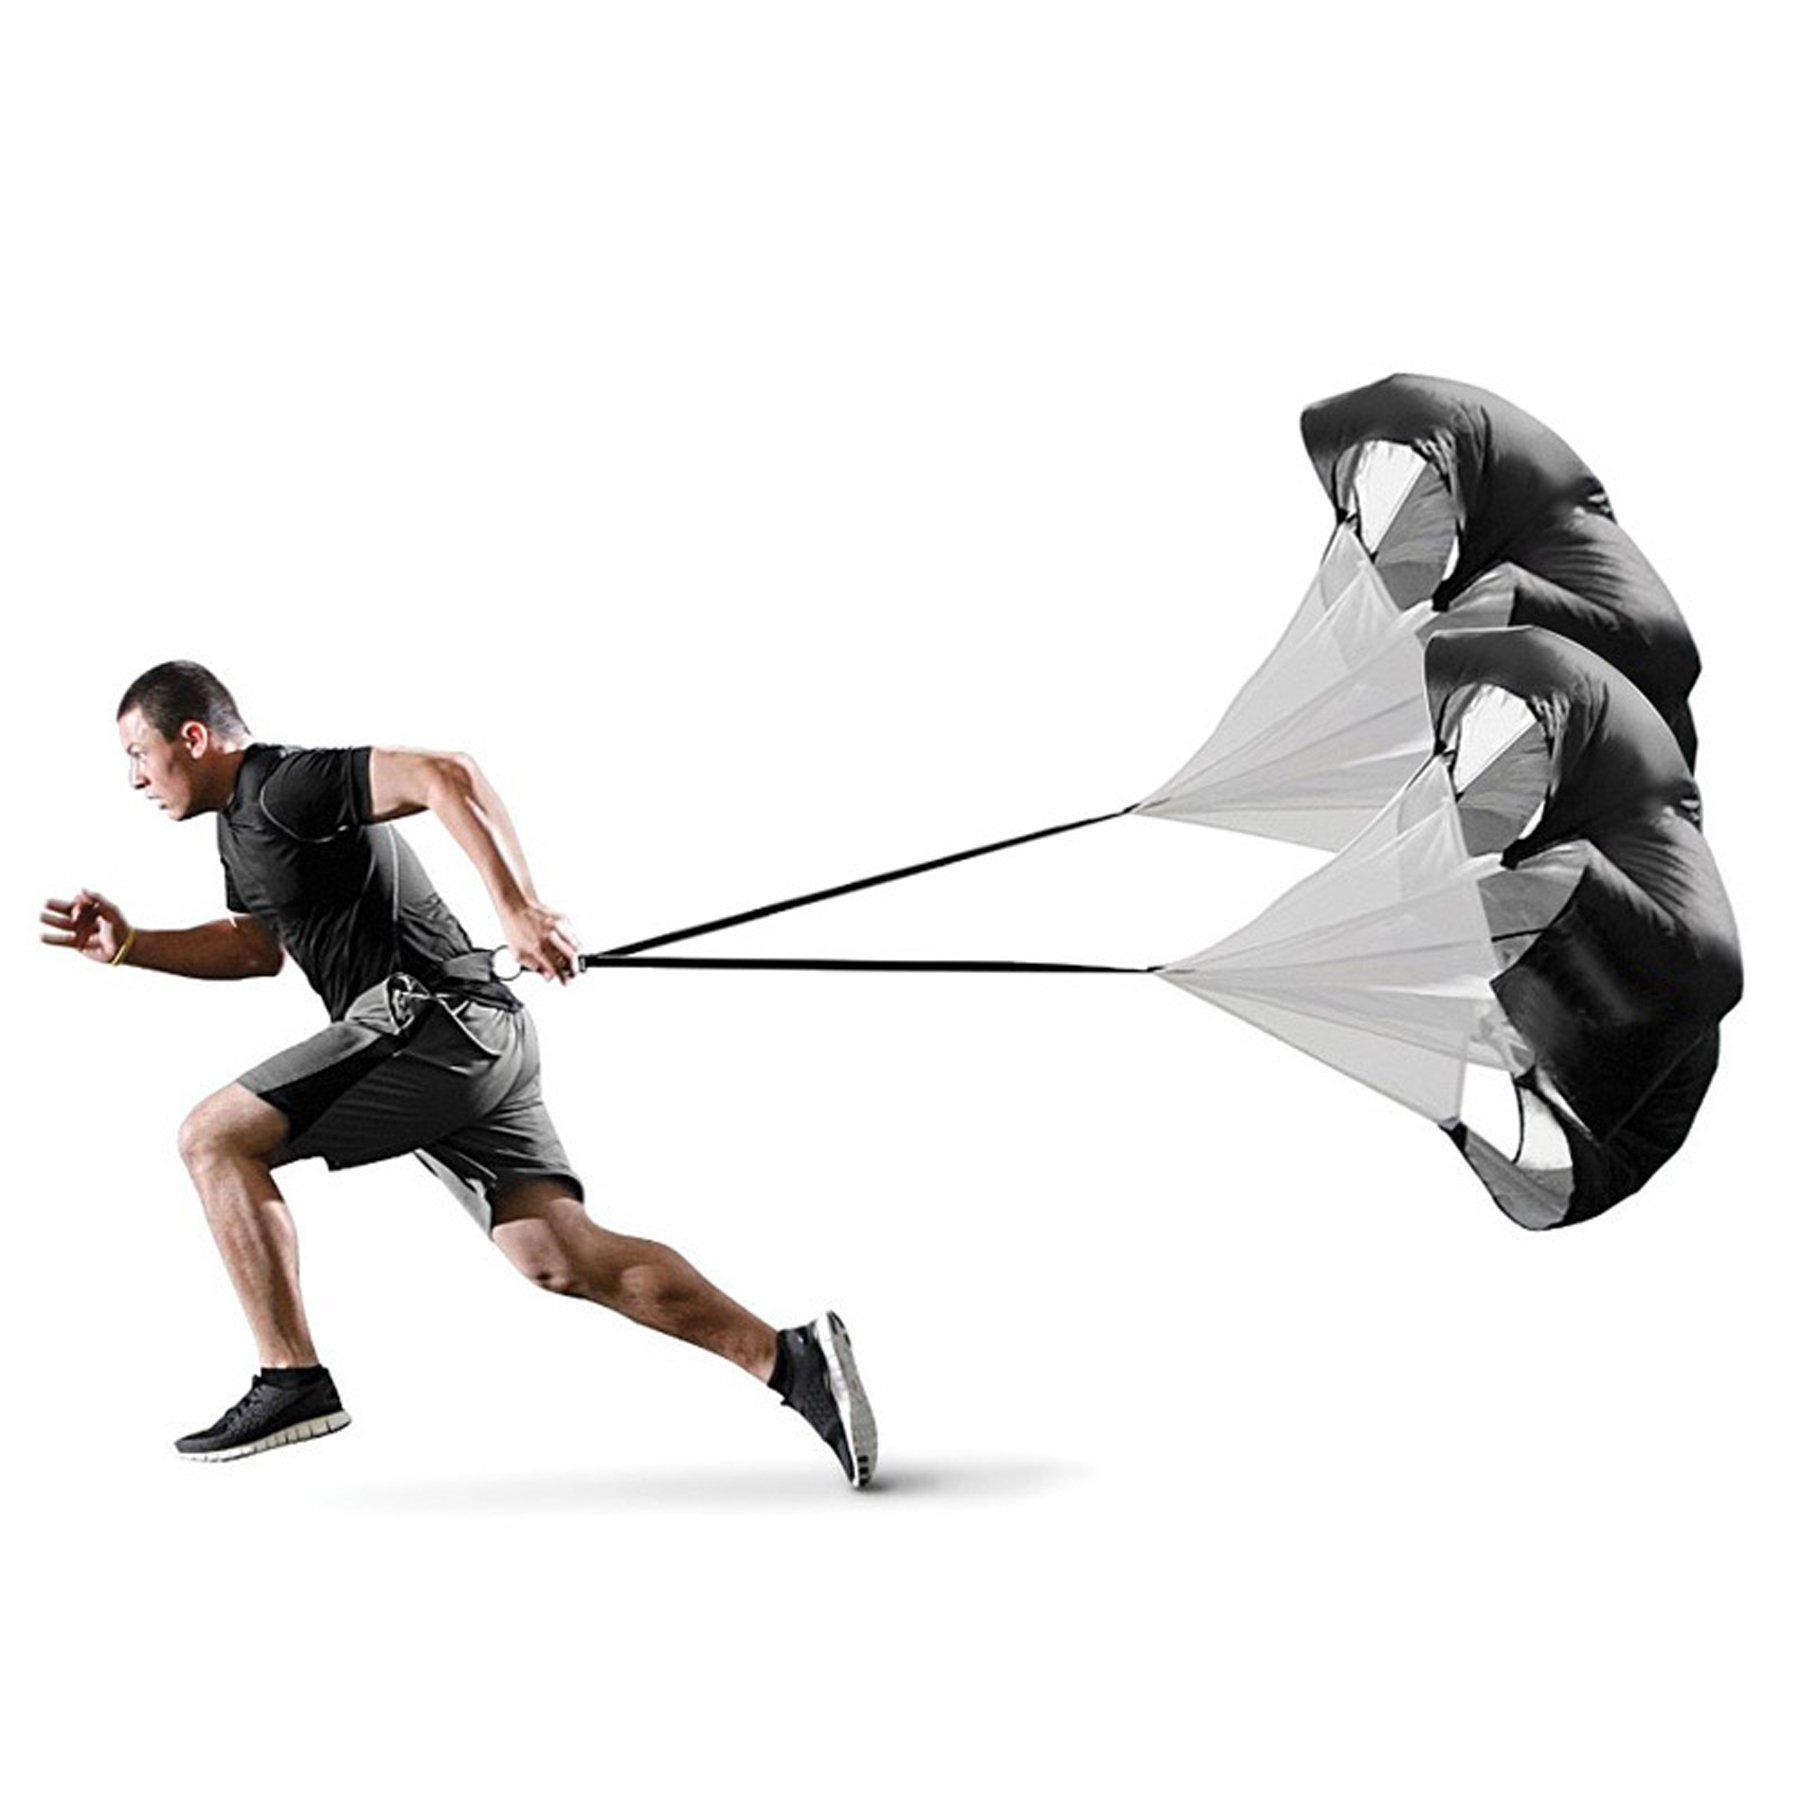 Micogo 58'' Resistance Speed Training Parachute & Fitness Explosive Power Training Equipment,with 2 Umbrella by Micogo (Image #4)